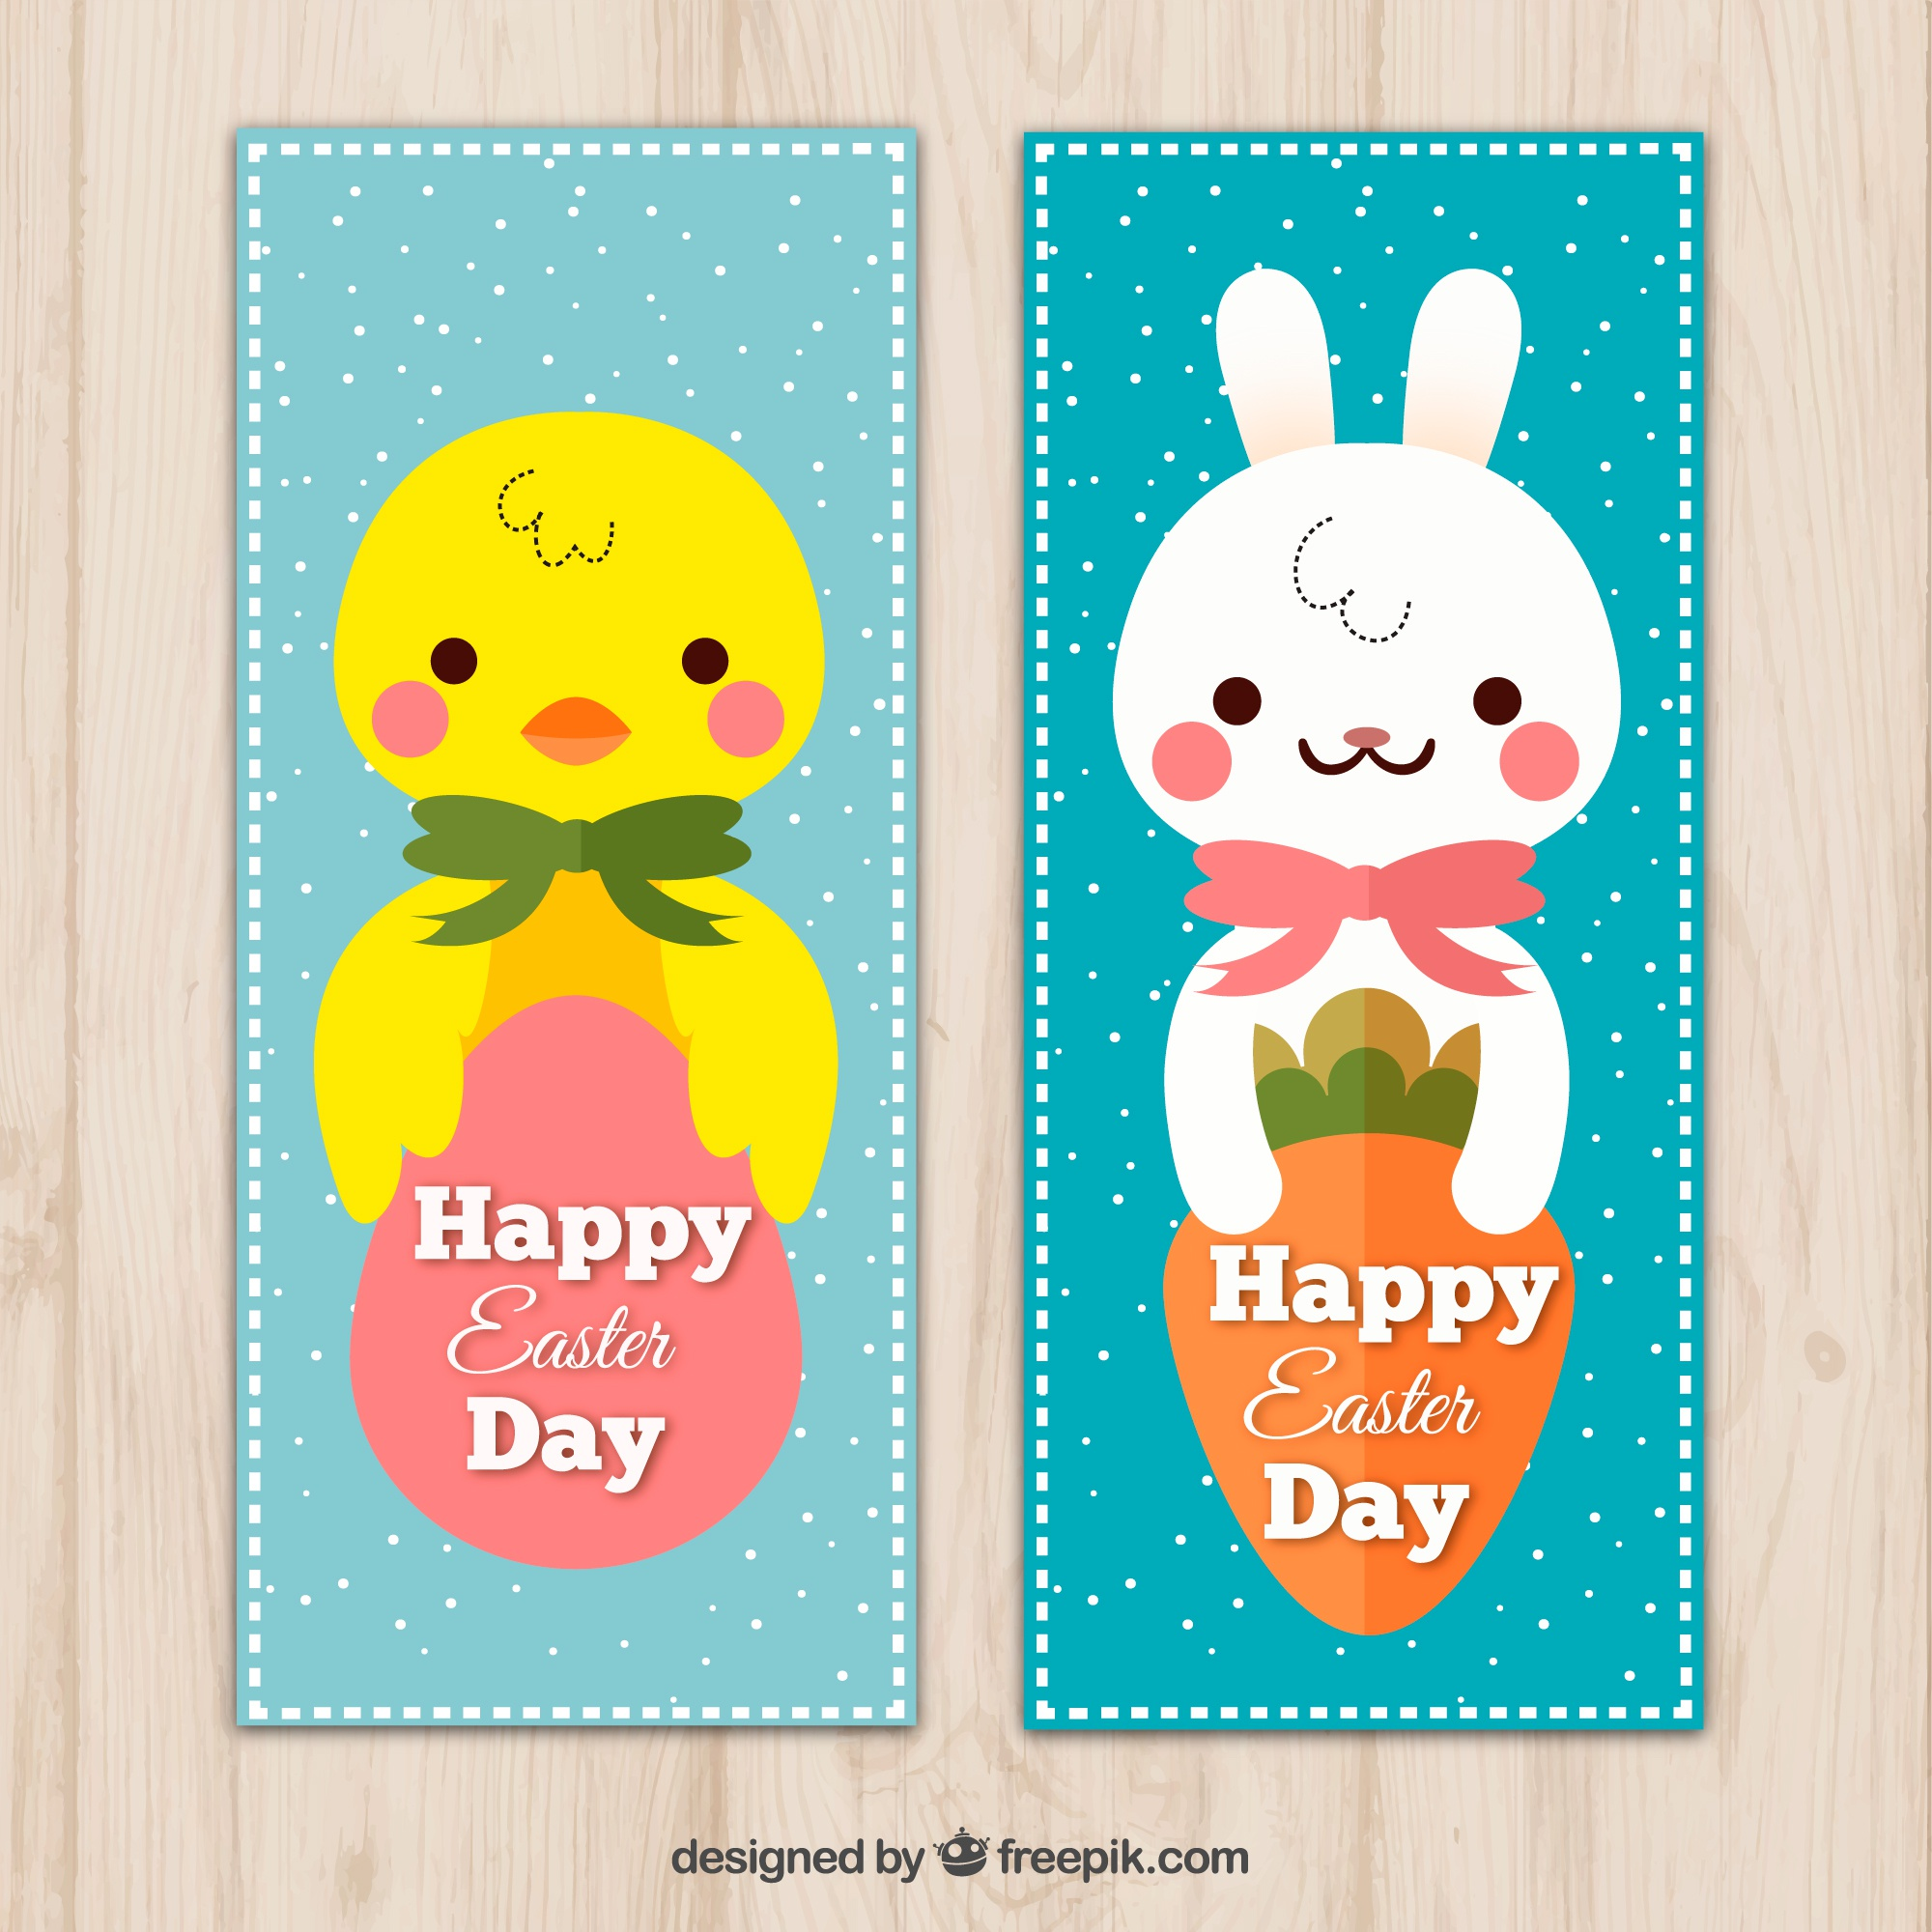 Cute easter banners with chick and bunny